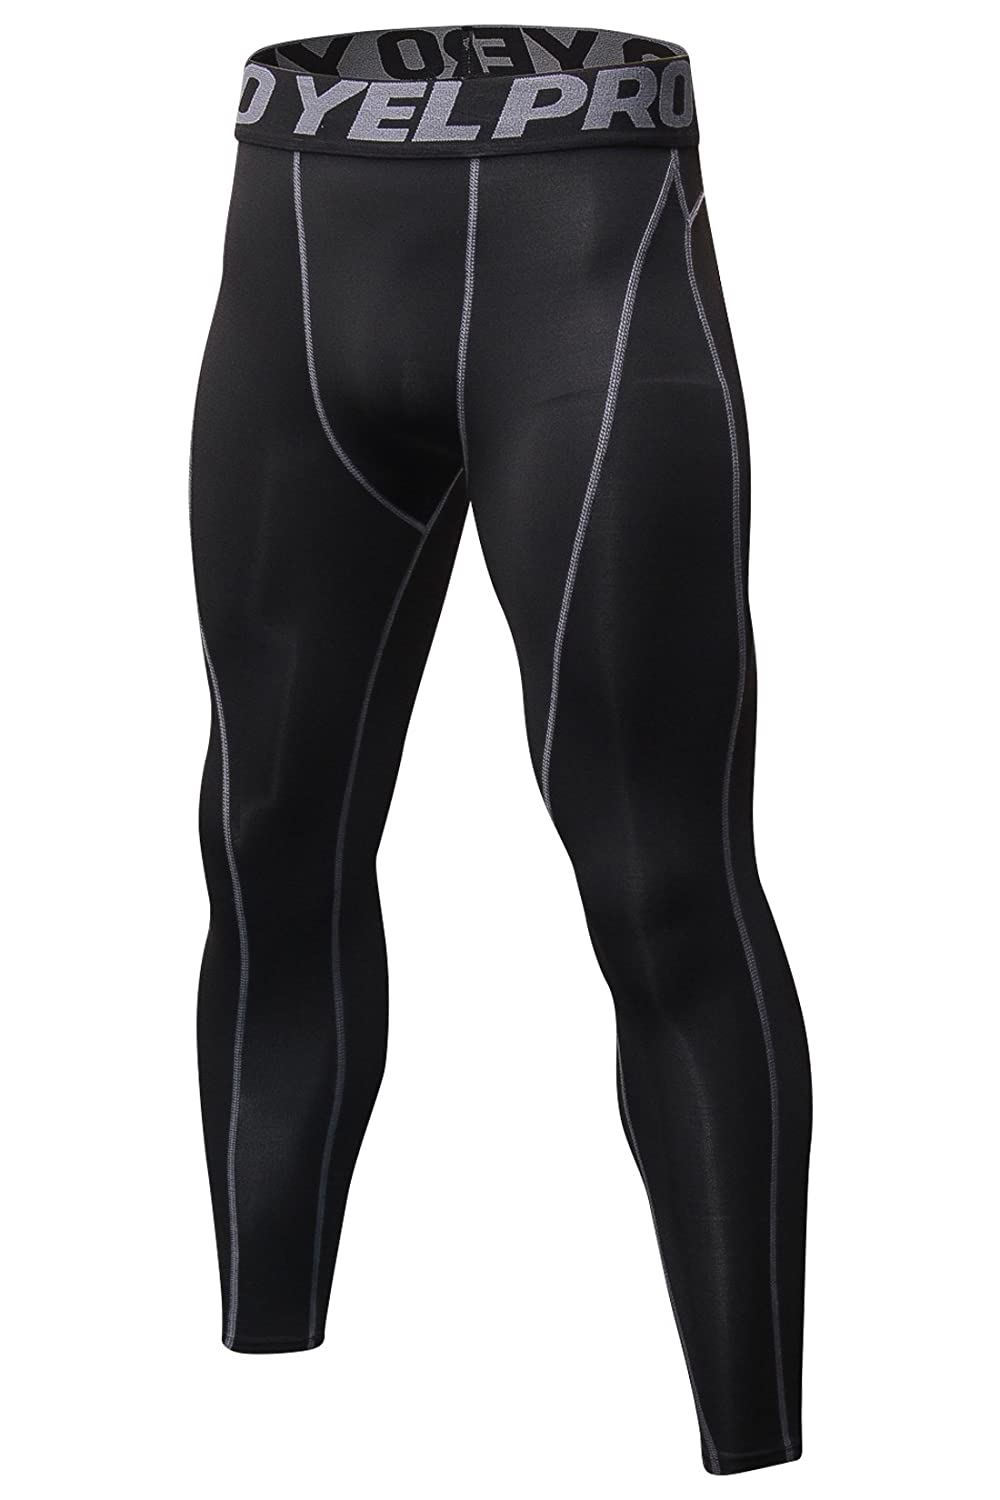 d5e0c6f05b8fa DESIGN:This item made of 85% Polyester 15% Spandex of high  elasticity,Four-Way Stretch-Provides comfortable experience without  restriction when doing ...